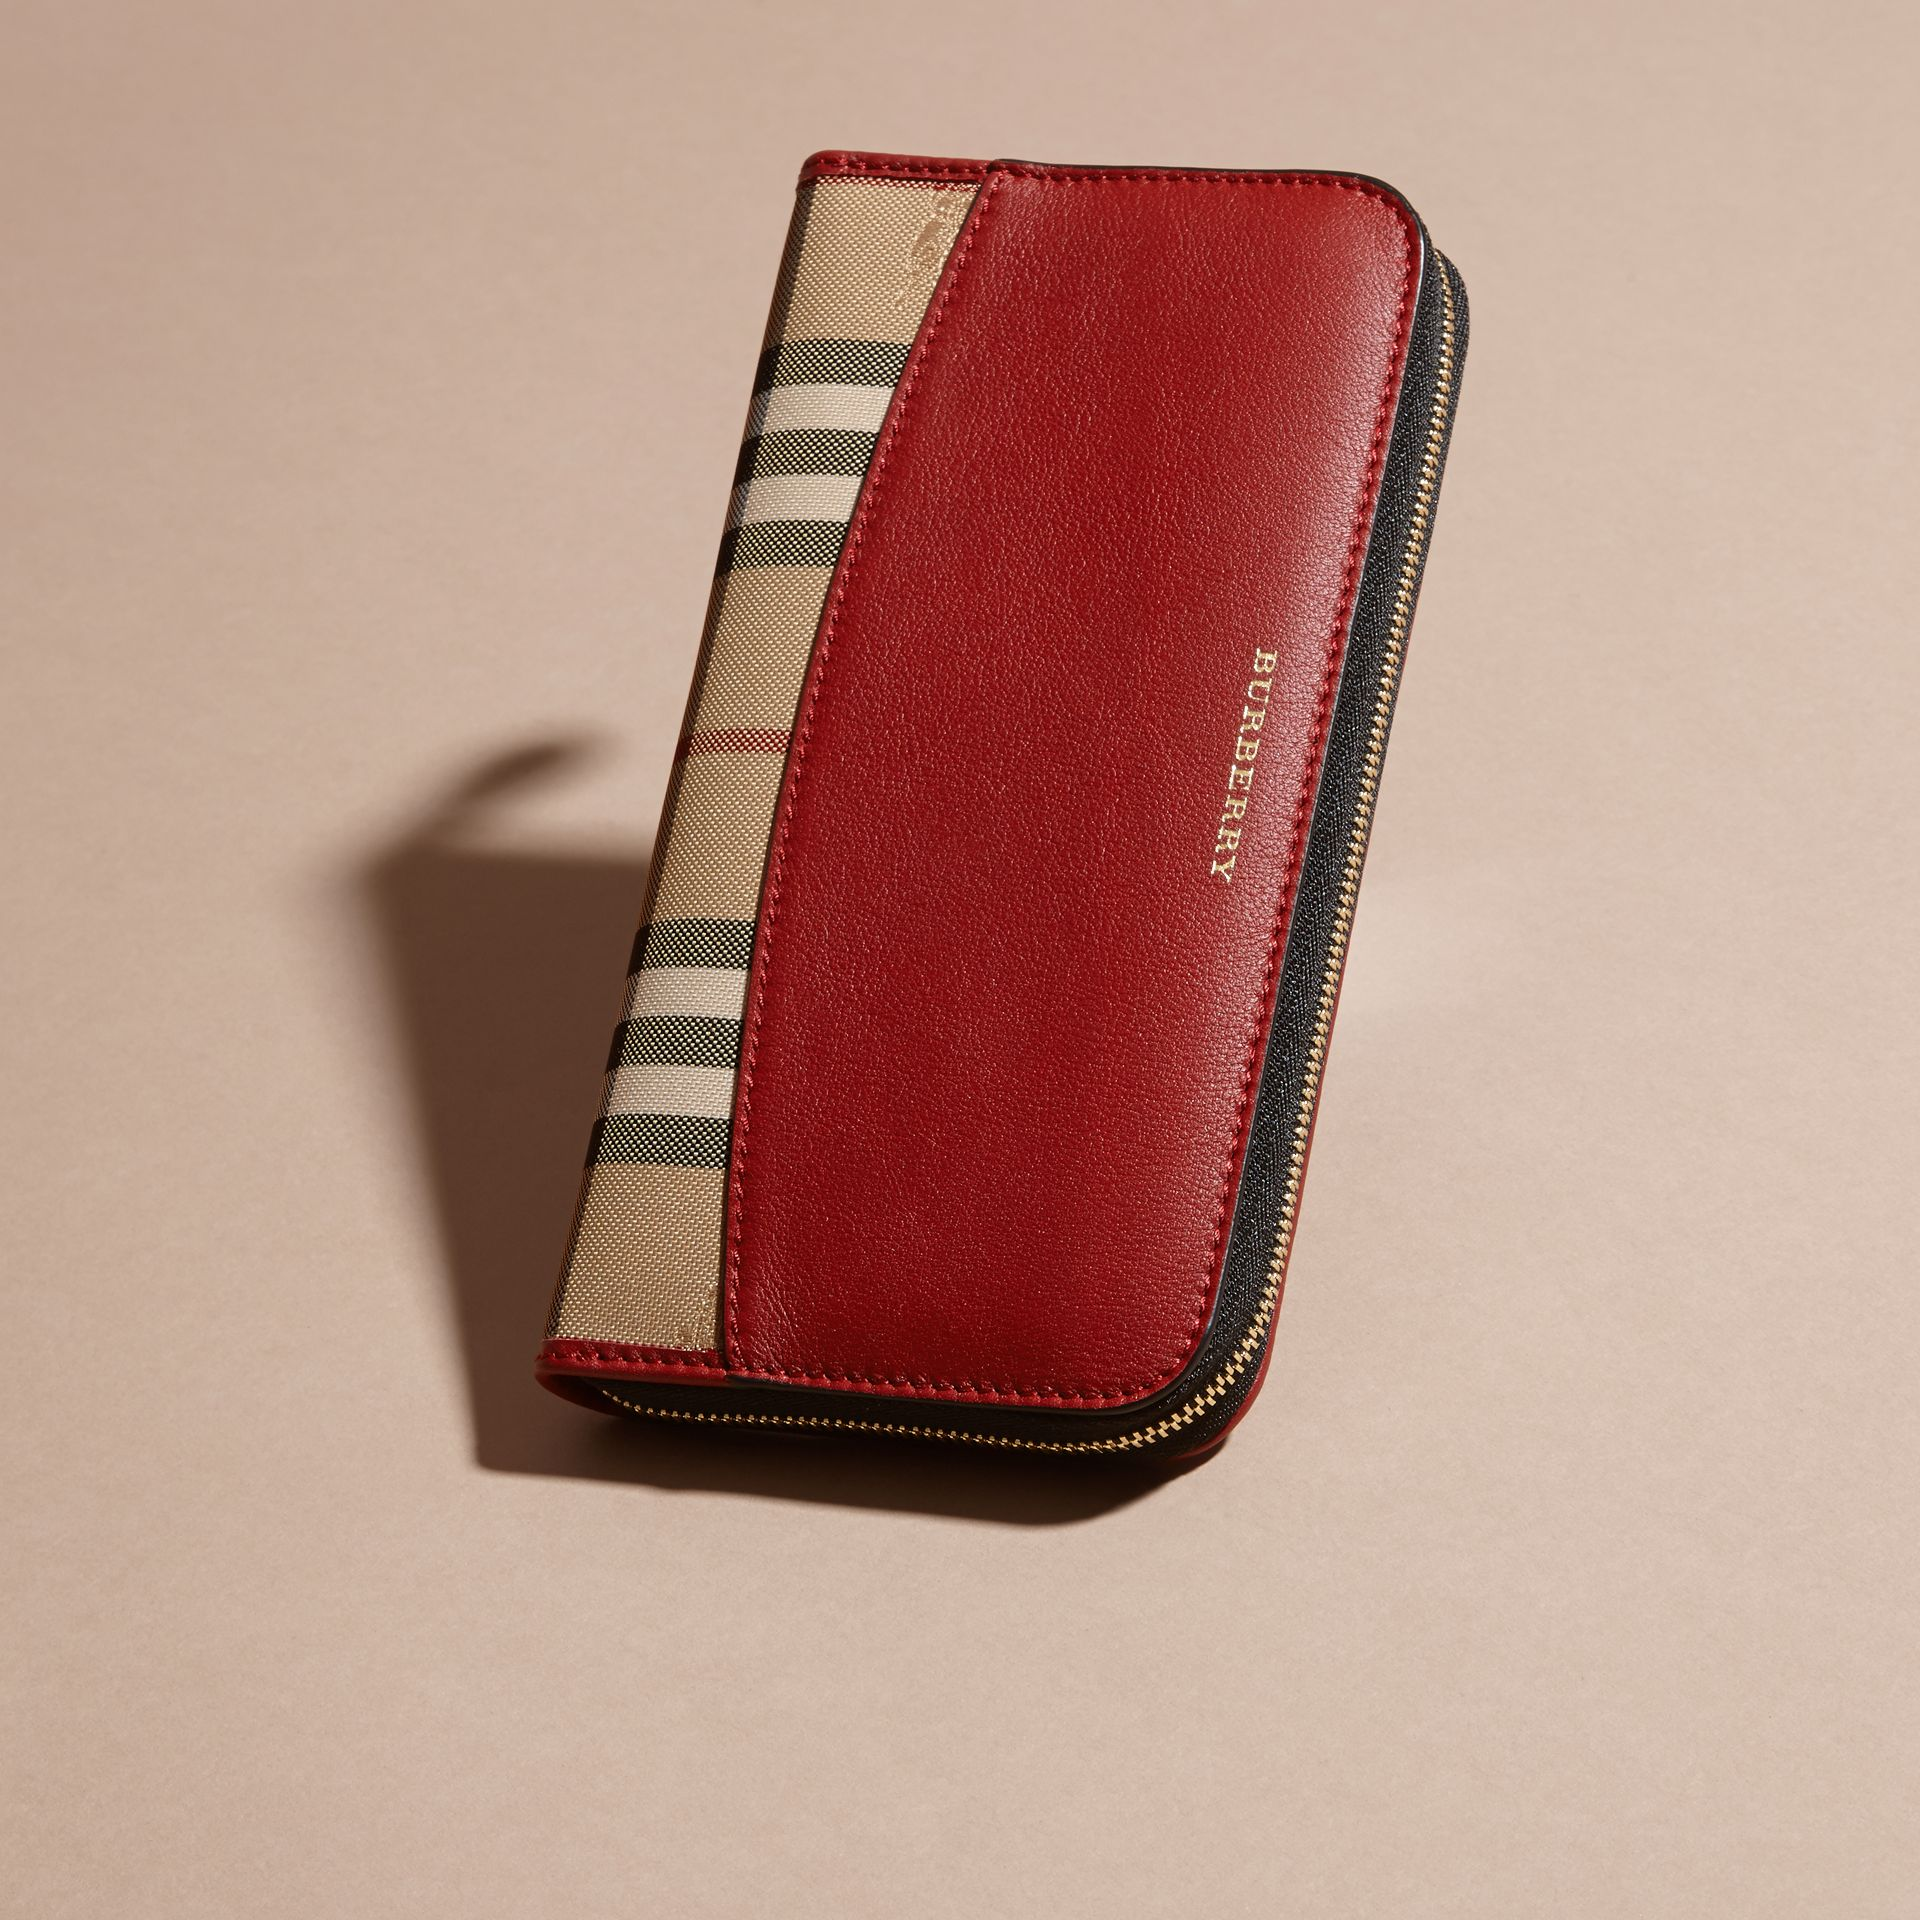 Horseferry Check and Leather Ziparound Wallet in Parade Red - Women | Burberry - gallery image 3